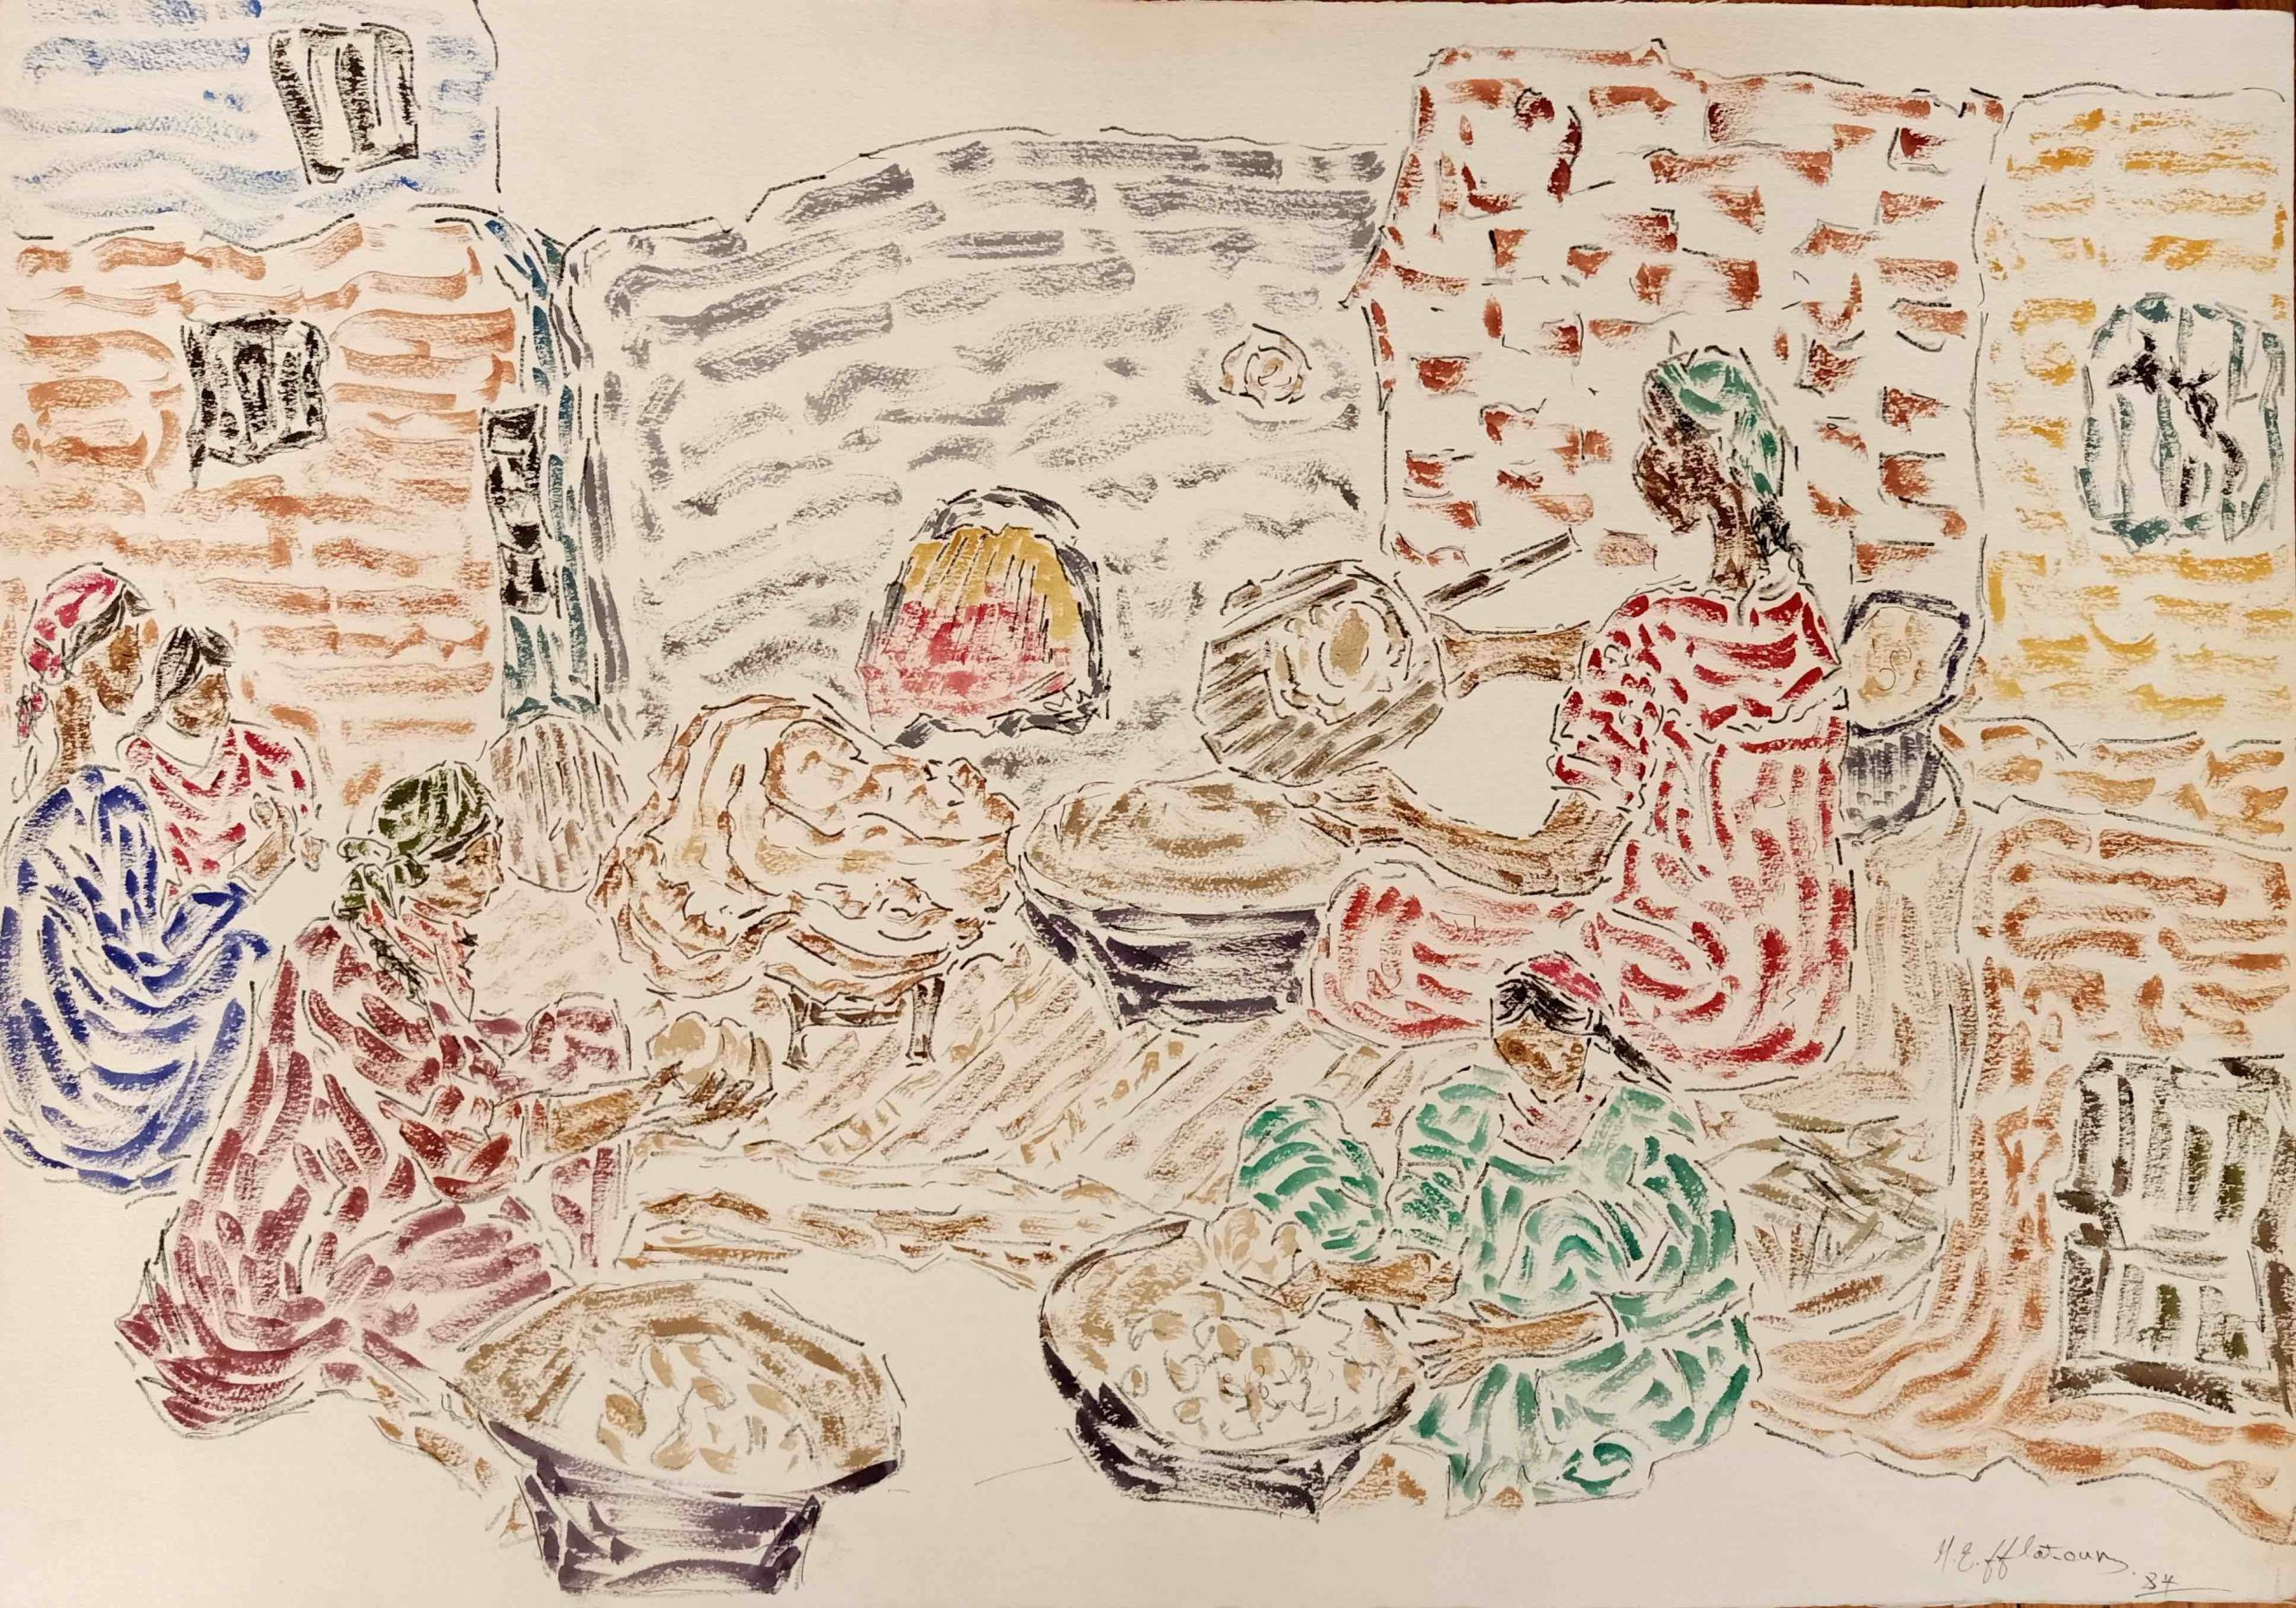 INJI EFFLATOUN al-Khobz [Bread Makers], 1984 Watercolour on rough thick paper 55 x 80 cm Signed dated lower right